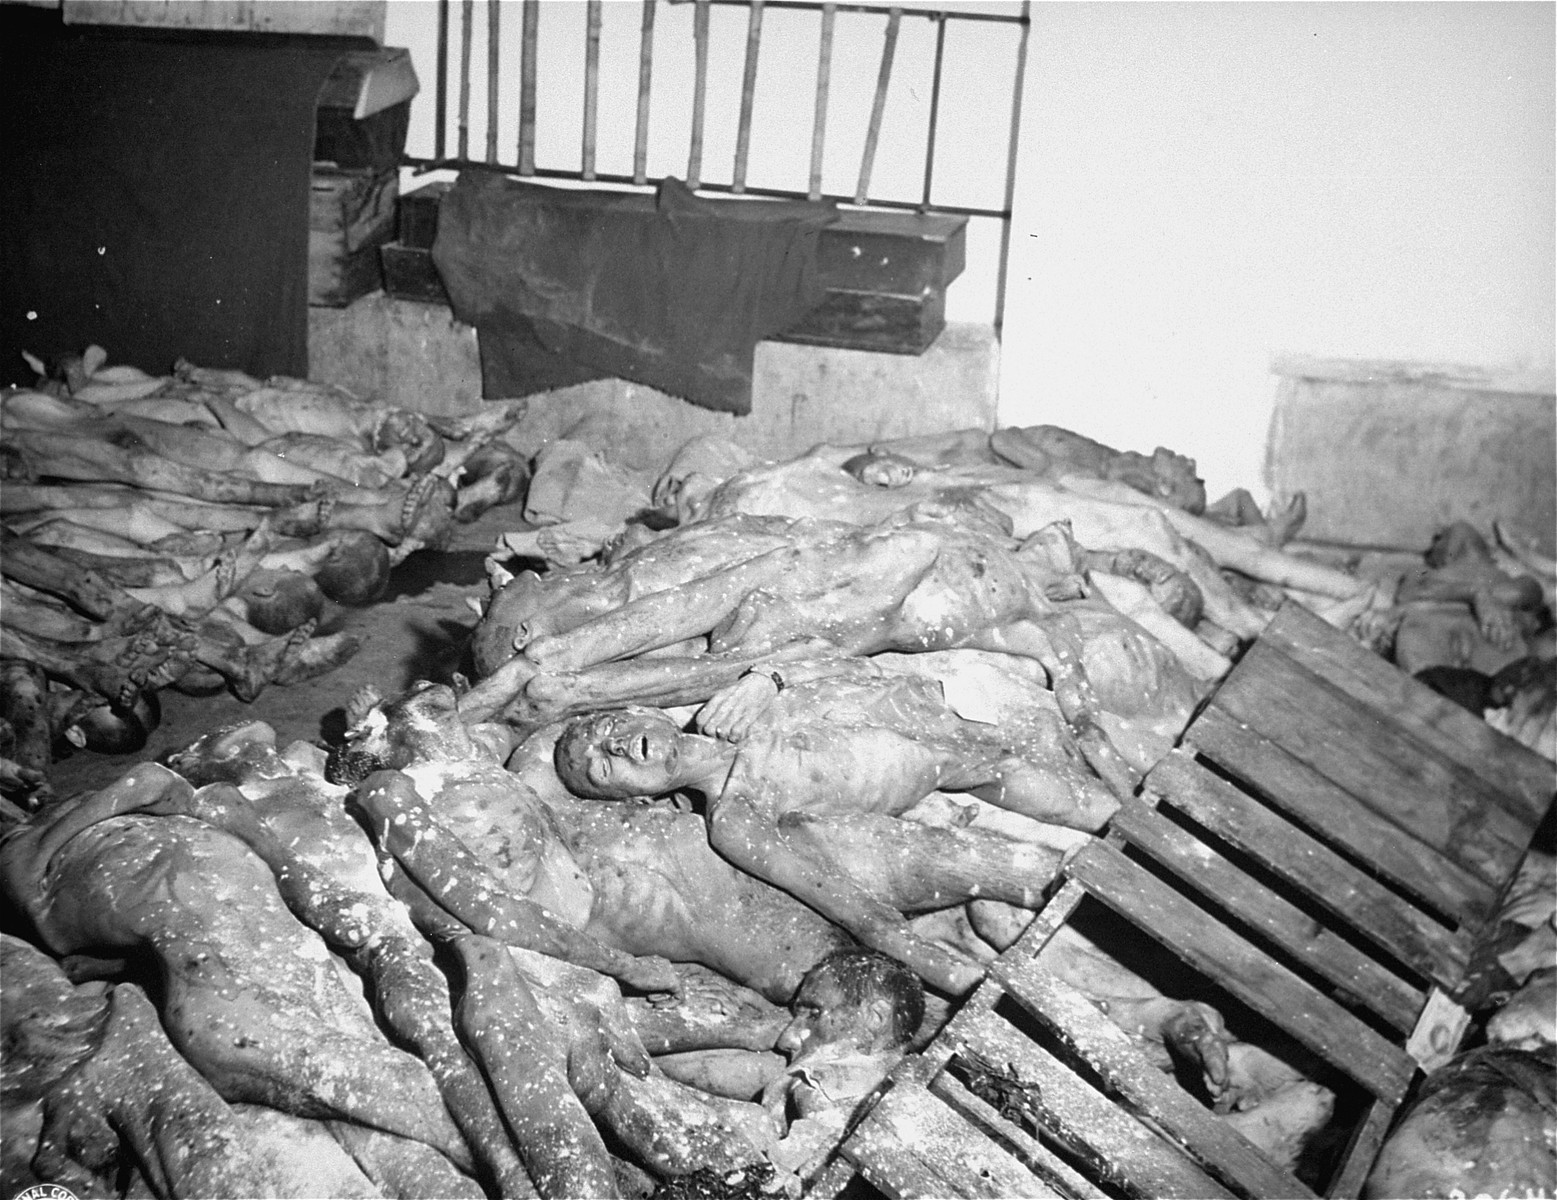 The bodies of prisoners killed in Gusen assembled for cremation.